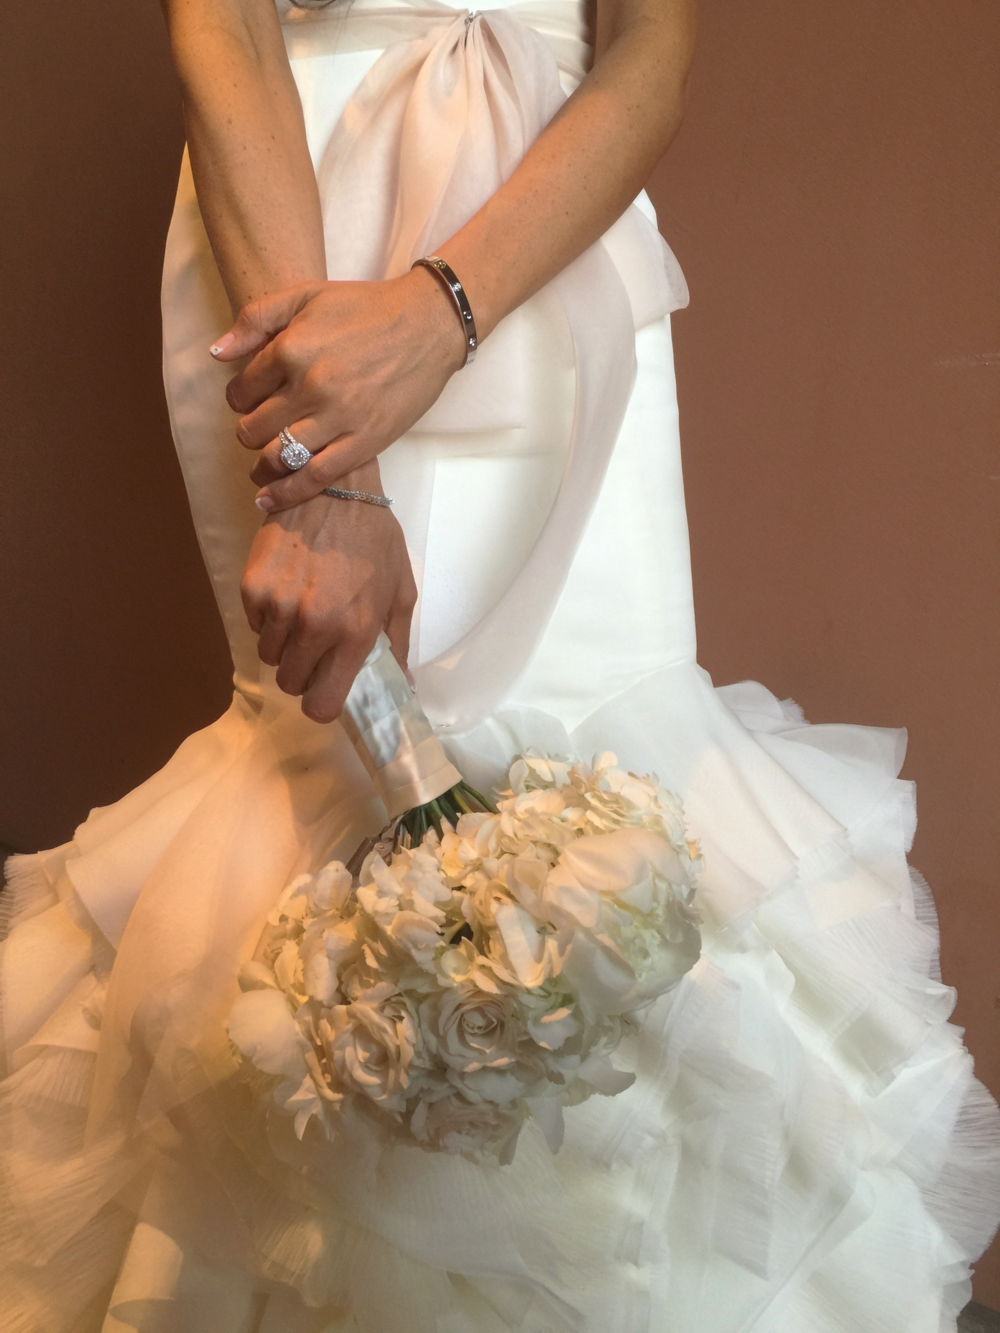 The bride's bouquet was just gorgeous!  And her new Cartier Love Bangle was just glimmering on her wrist!